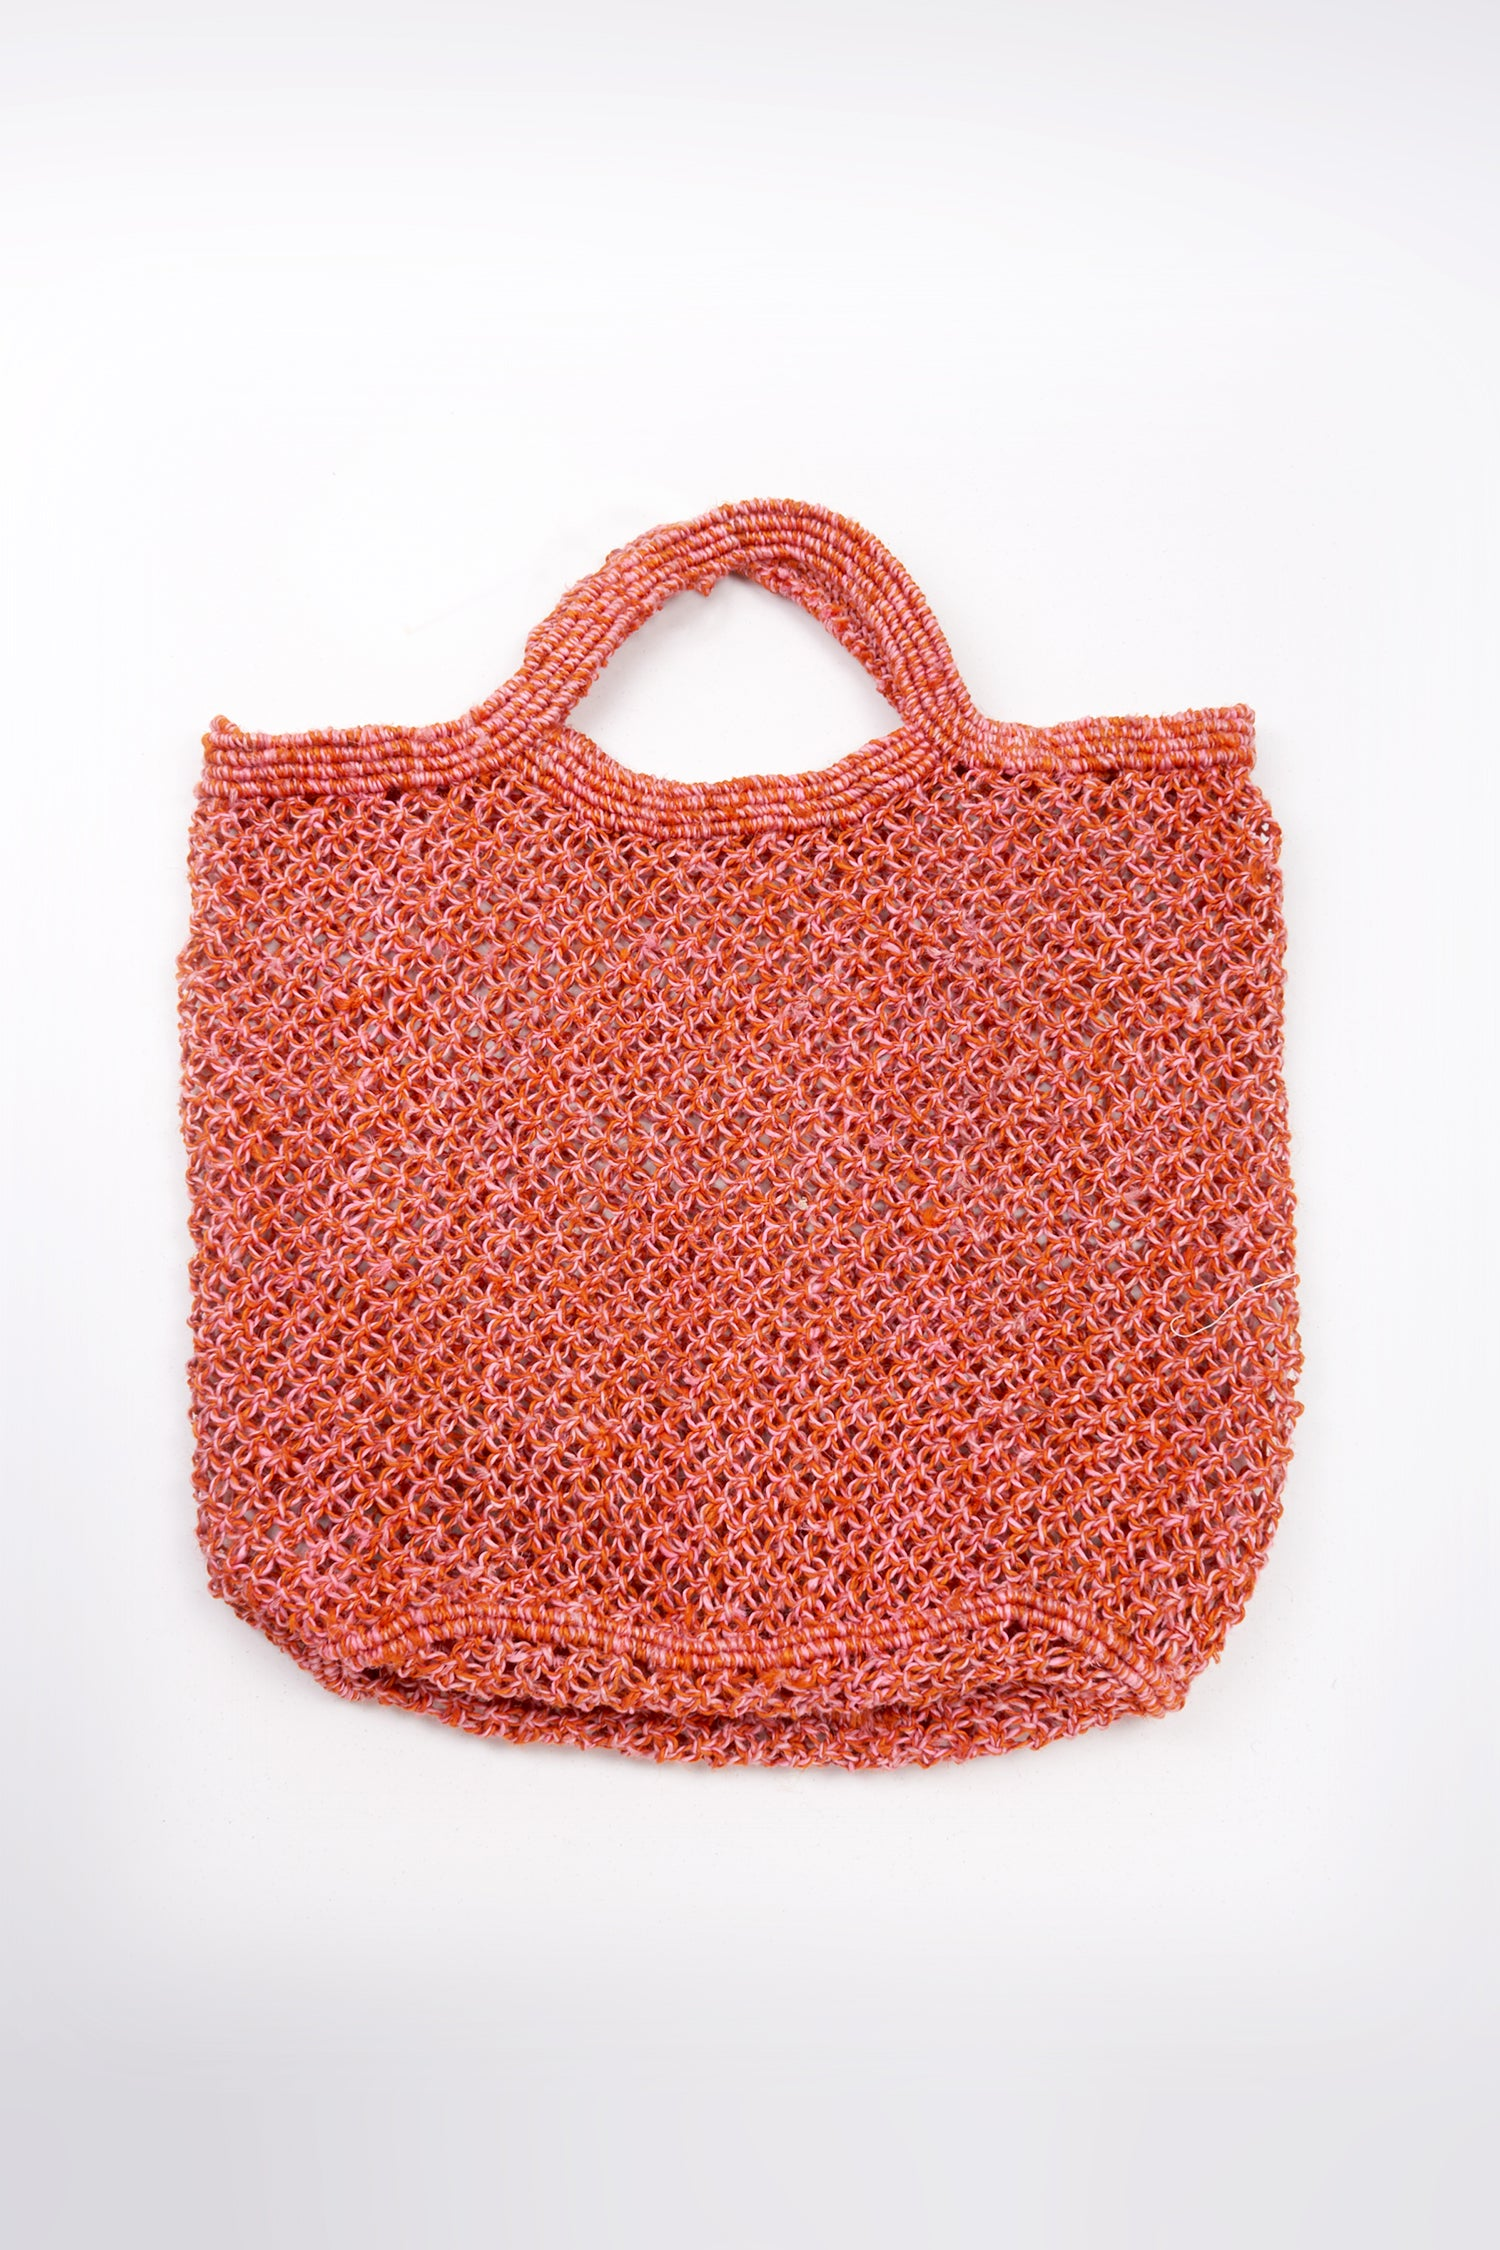 JUTE MACRAME SHOPPING BAG - CORAL